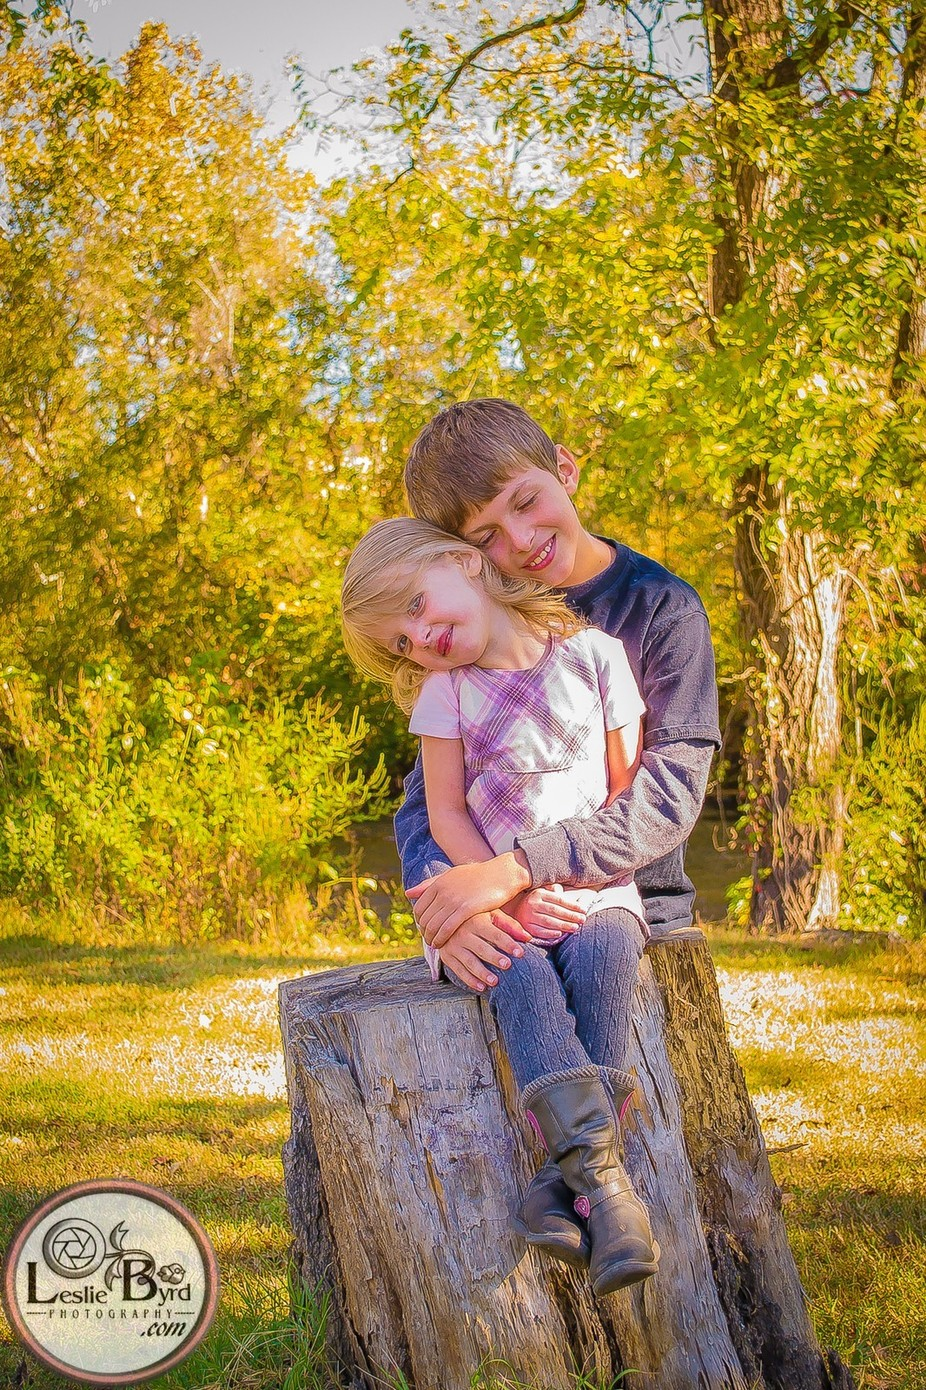 A sweet image of my children captured in an outside Autumn portrait session.